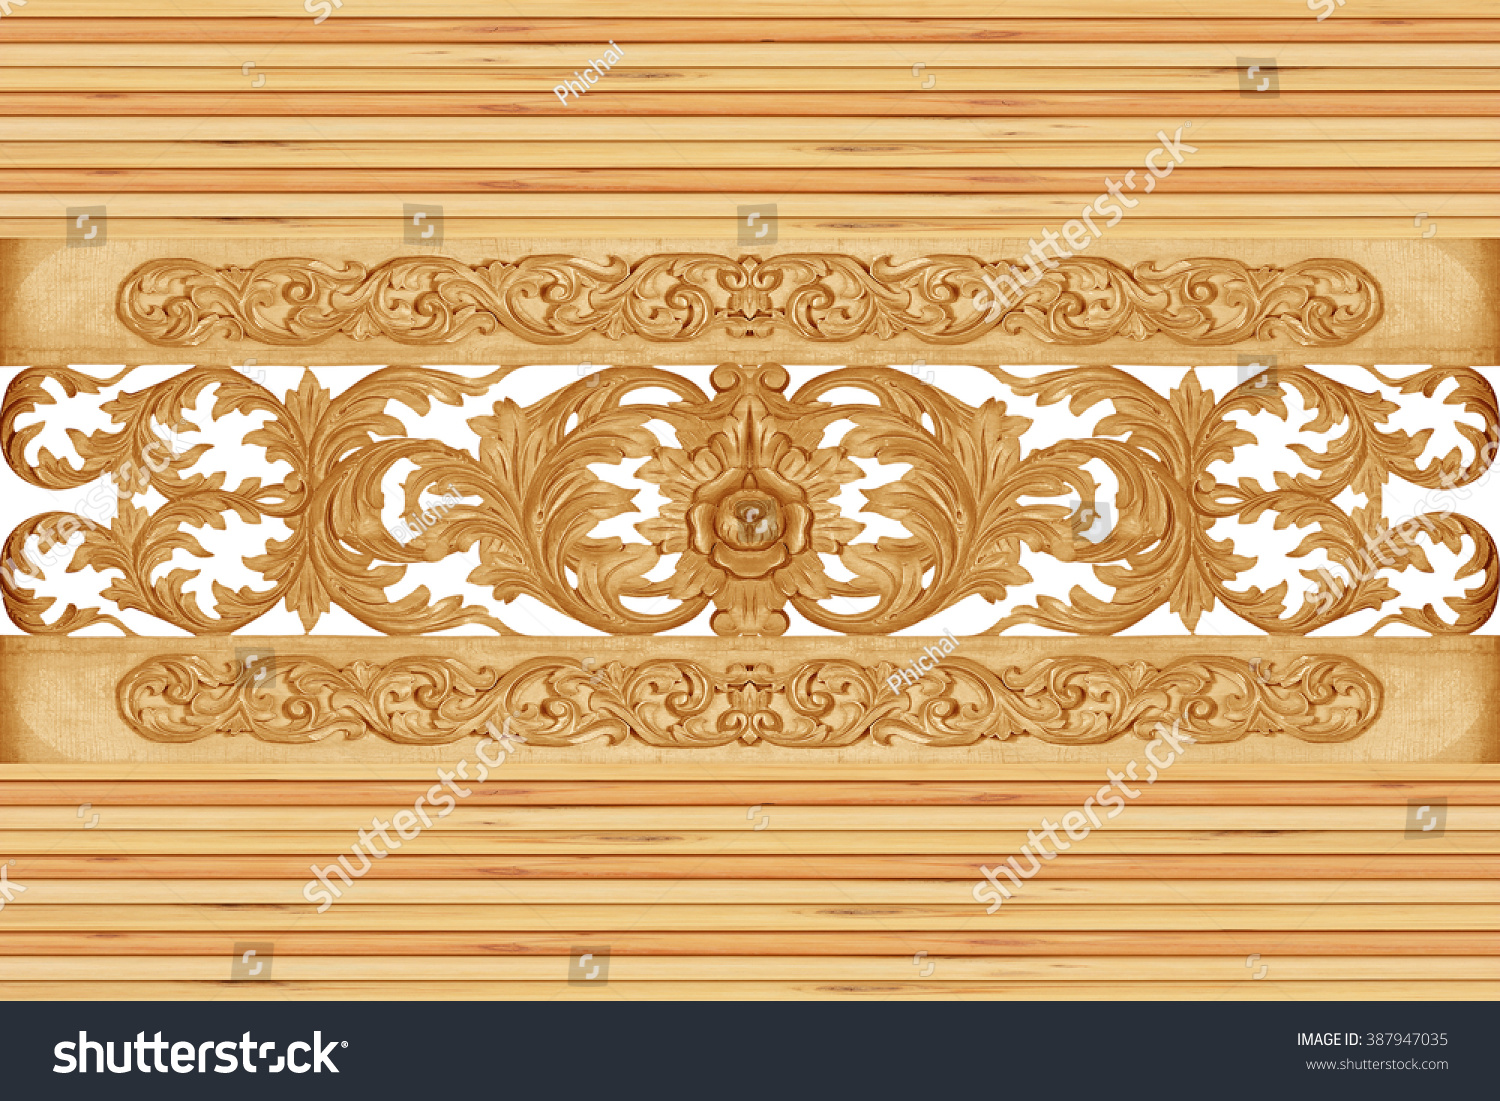 Famous Carved Wooden Wall Decor Composition - The Wall Art ...